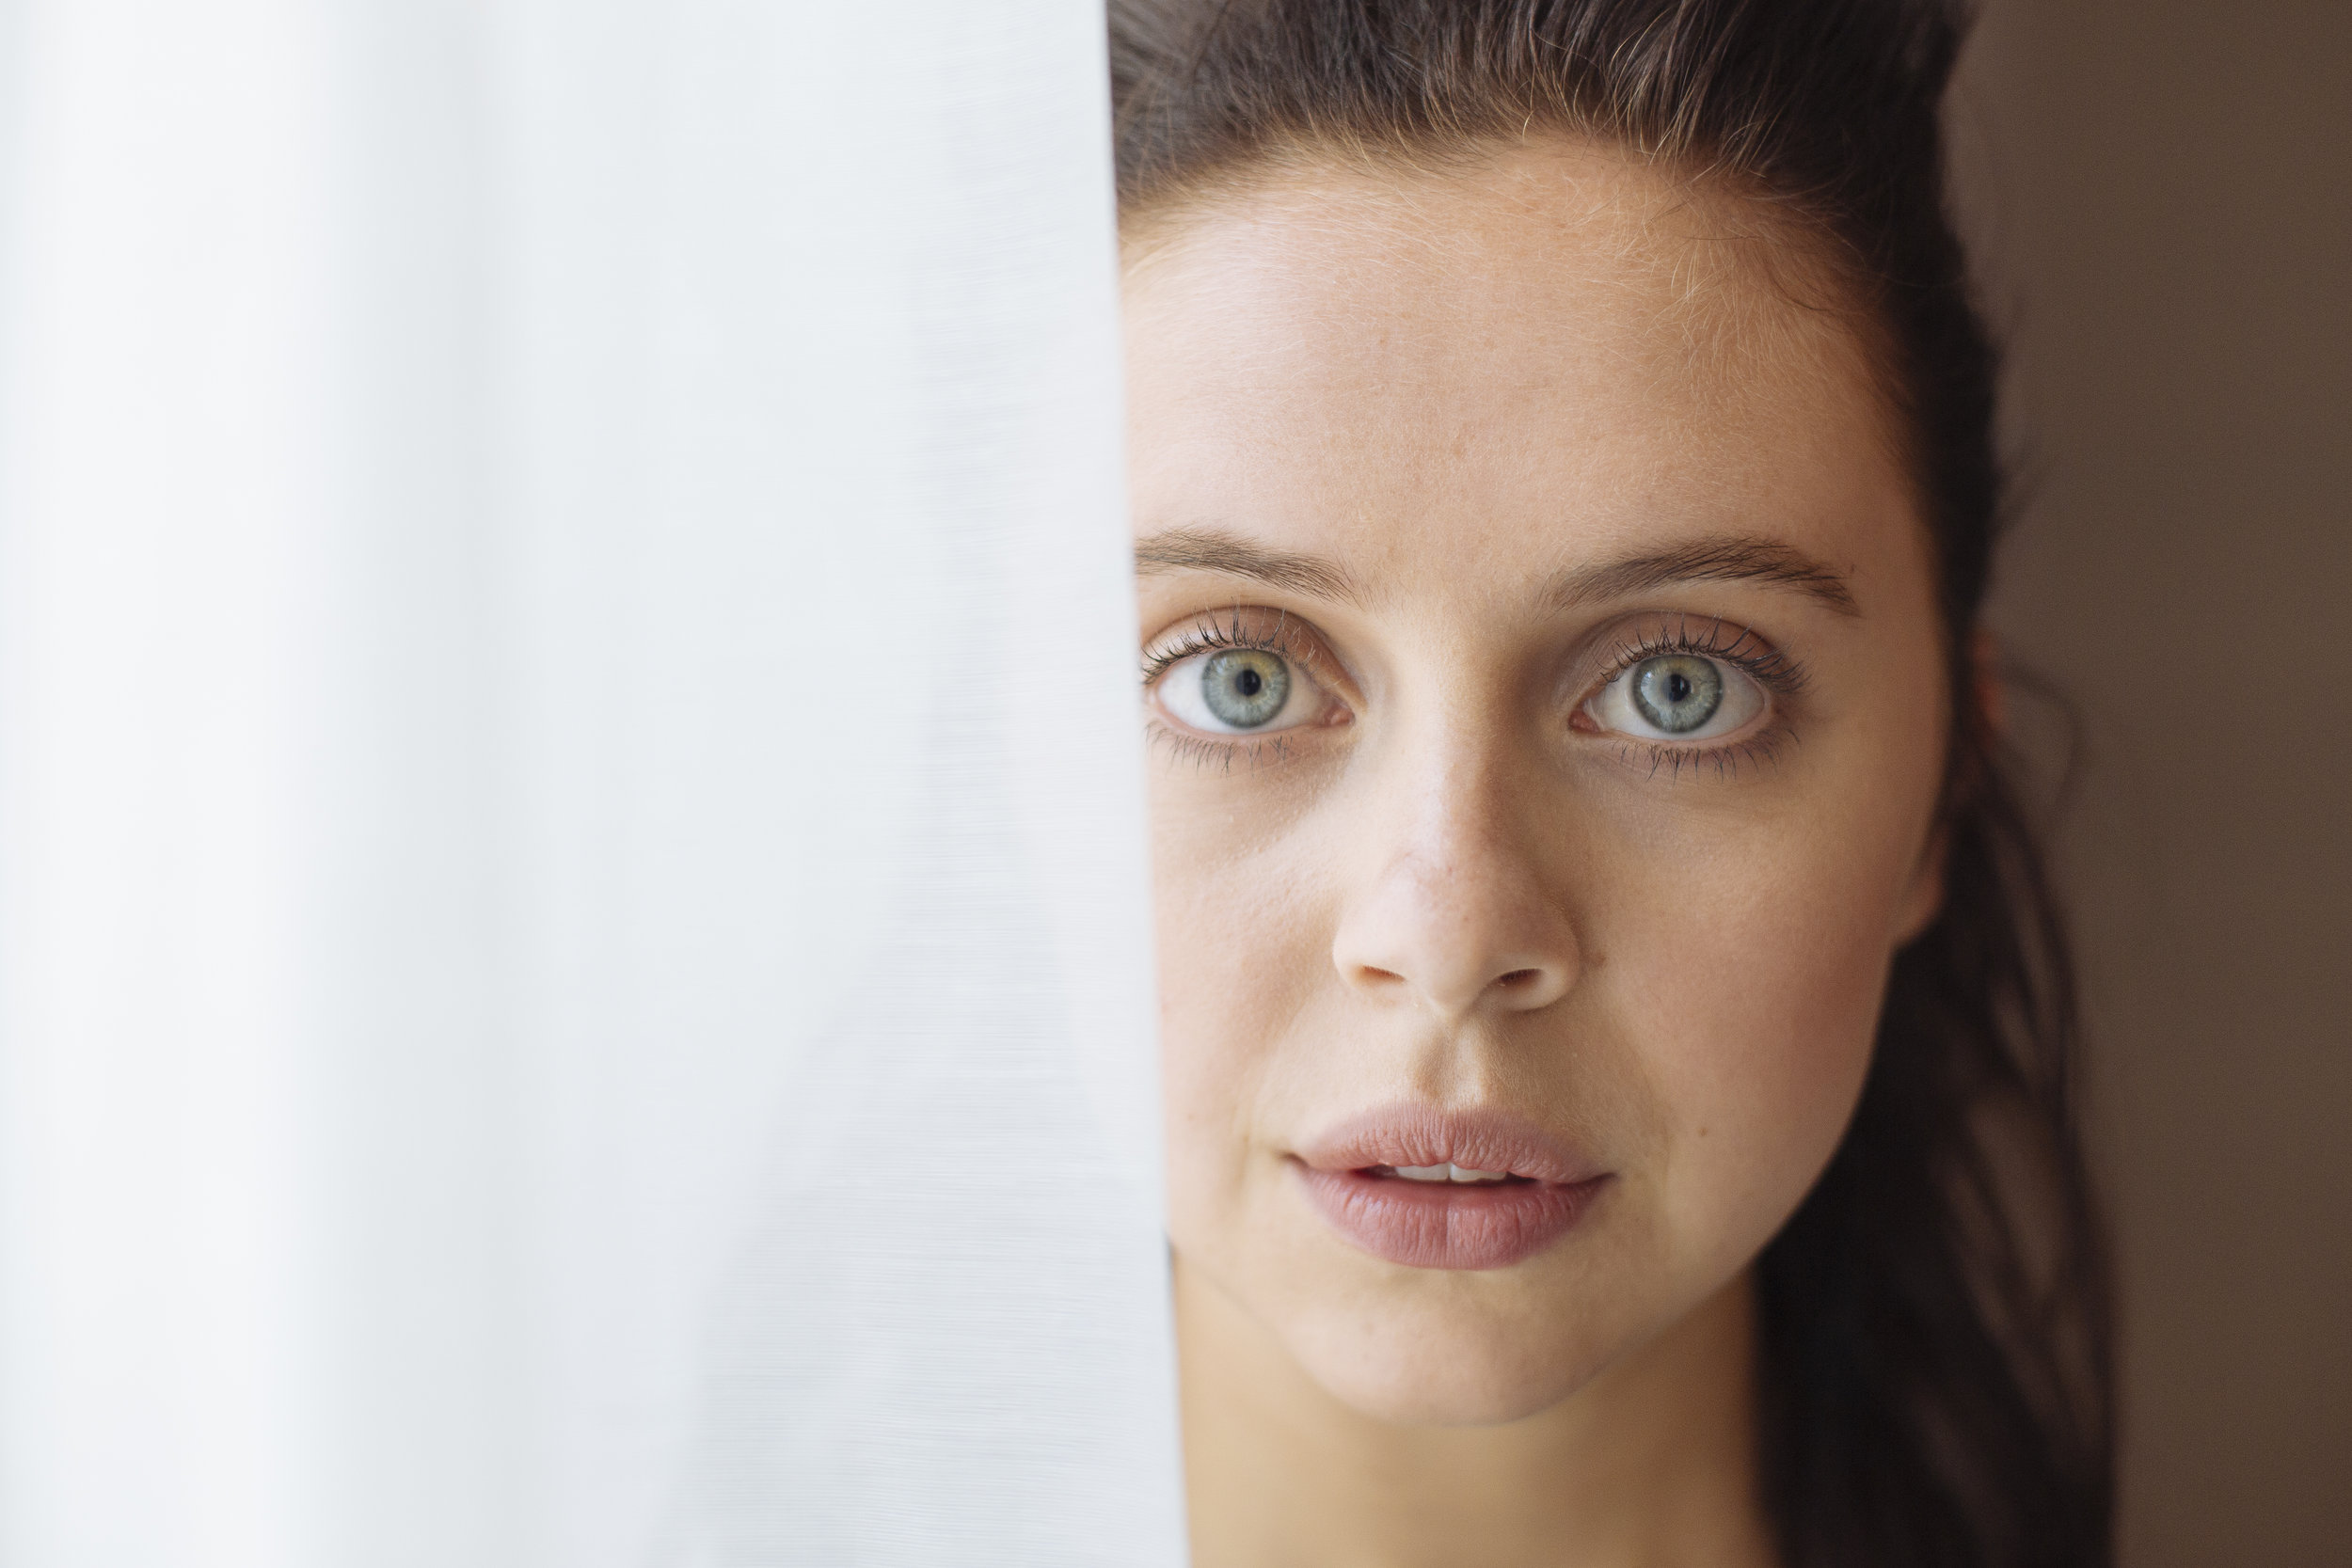 British actress Bel Powley poses for a portrait at a hotel in London, Wednesday, April 8, 2015. (David Azia for The New York Times)